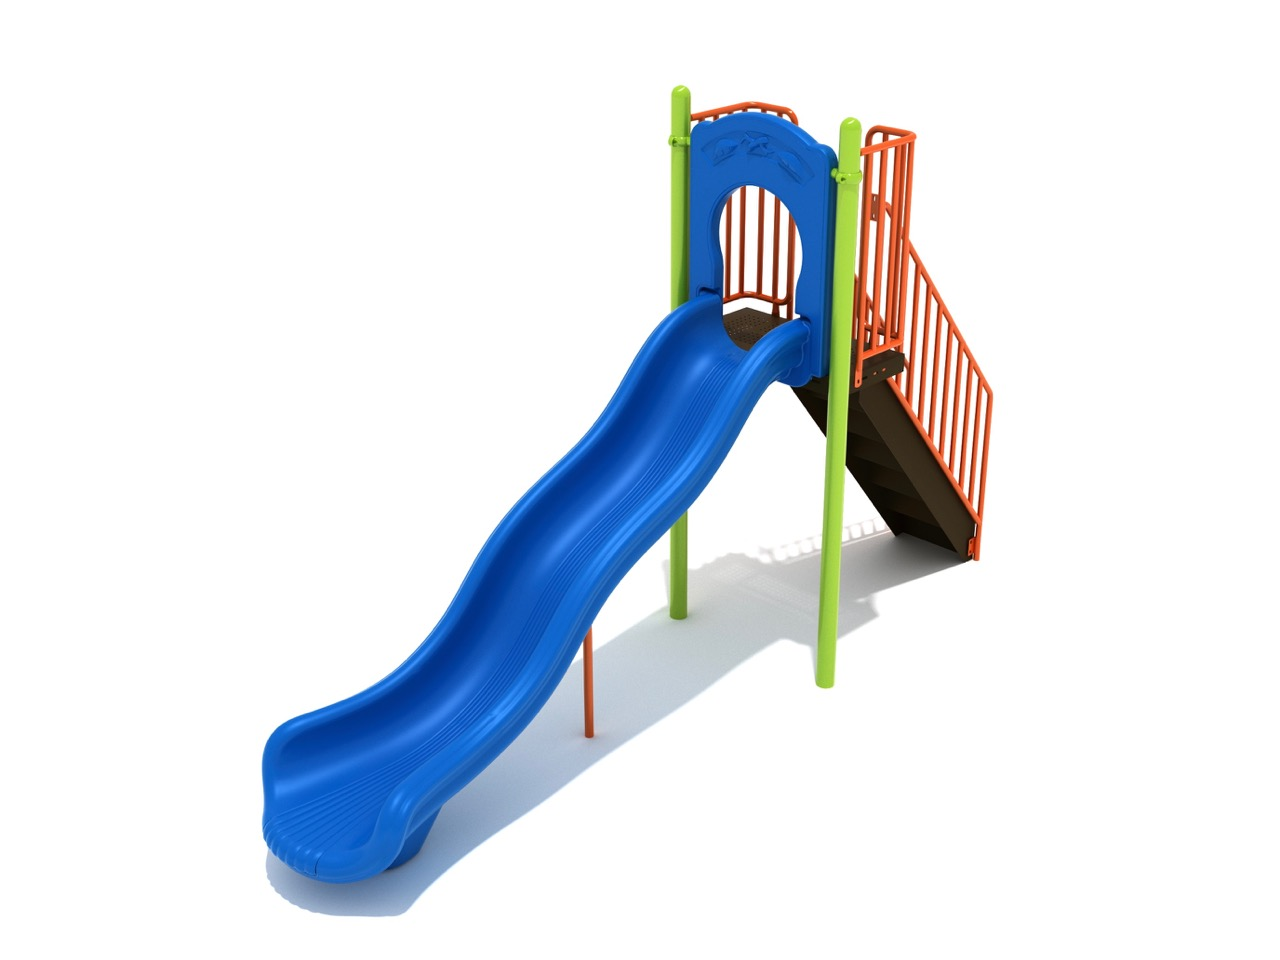 Old-fashioned metal playground slides 60 Off Walgreens Photo Coupons Promo Codes